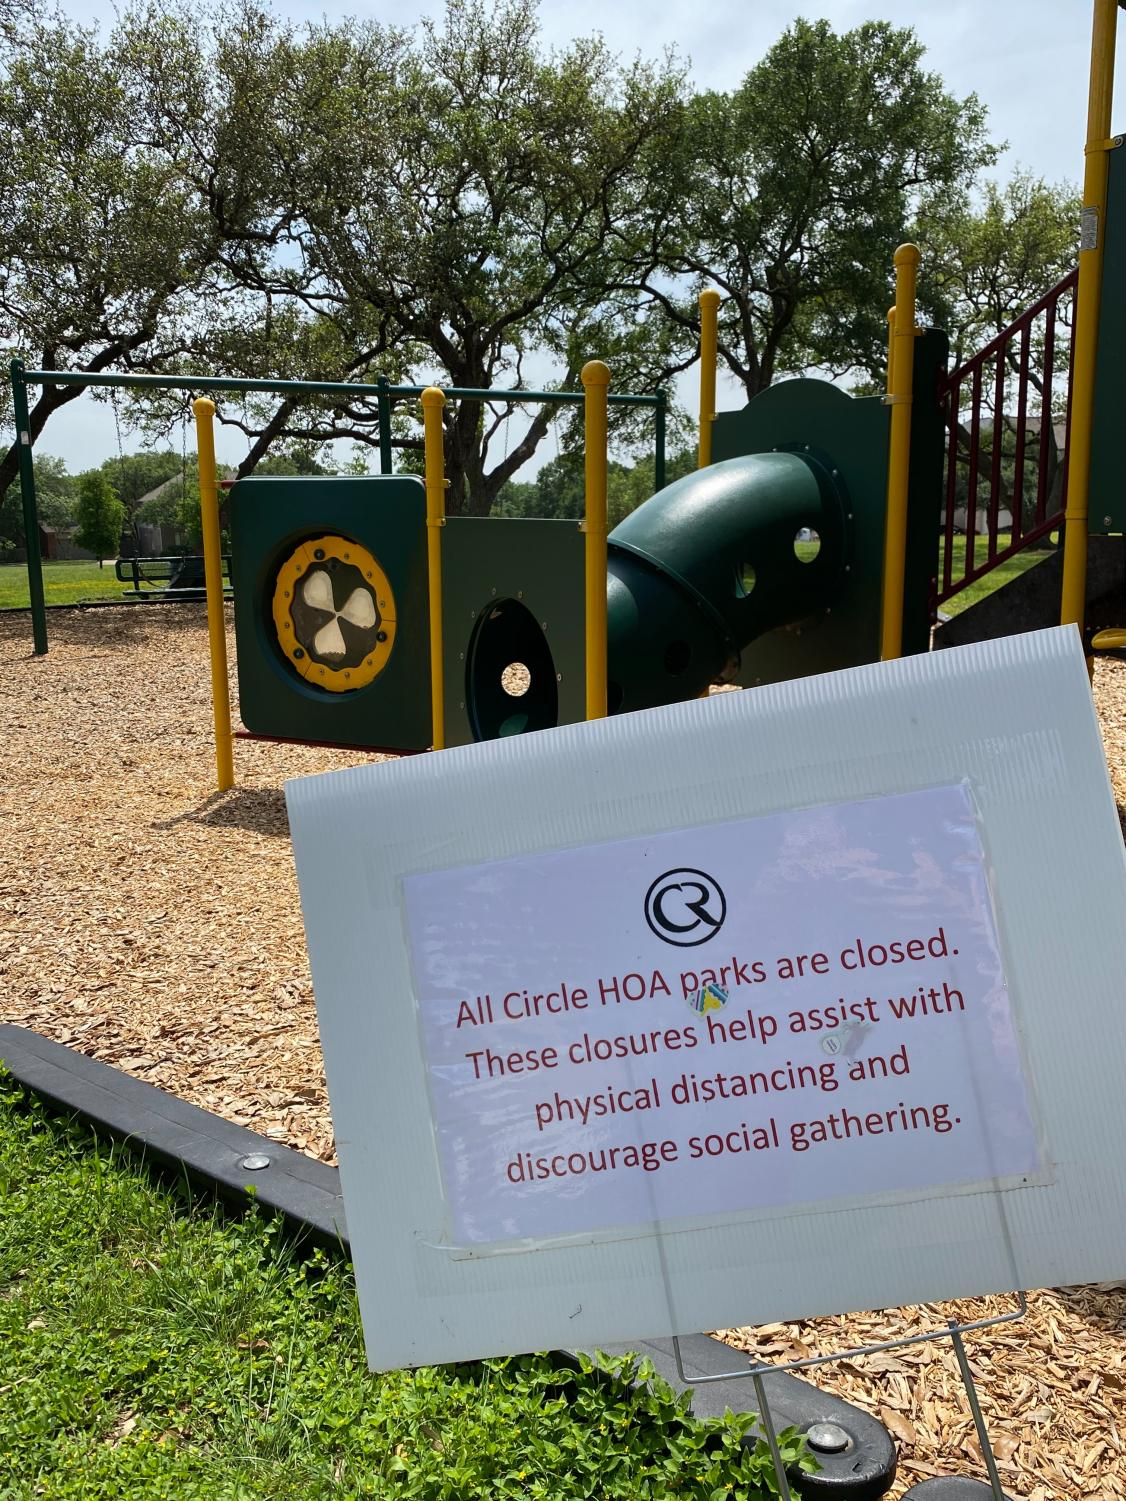 A+local+park+in+the+Austin+Circle+C+neighborhood+has+been+closed+in+response+to+the+citywide+park+closure.+The+closures+are+part+of+a+citywide+effort+to+enforce+physical+distancing+policies.+